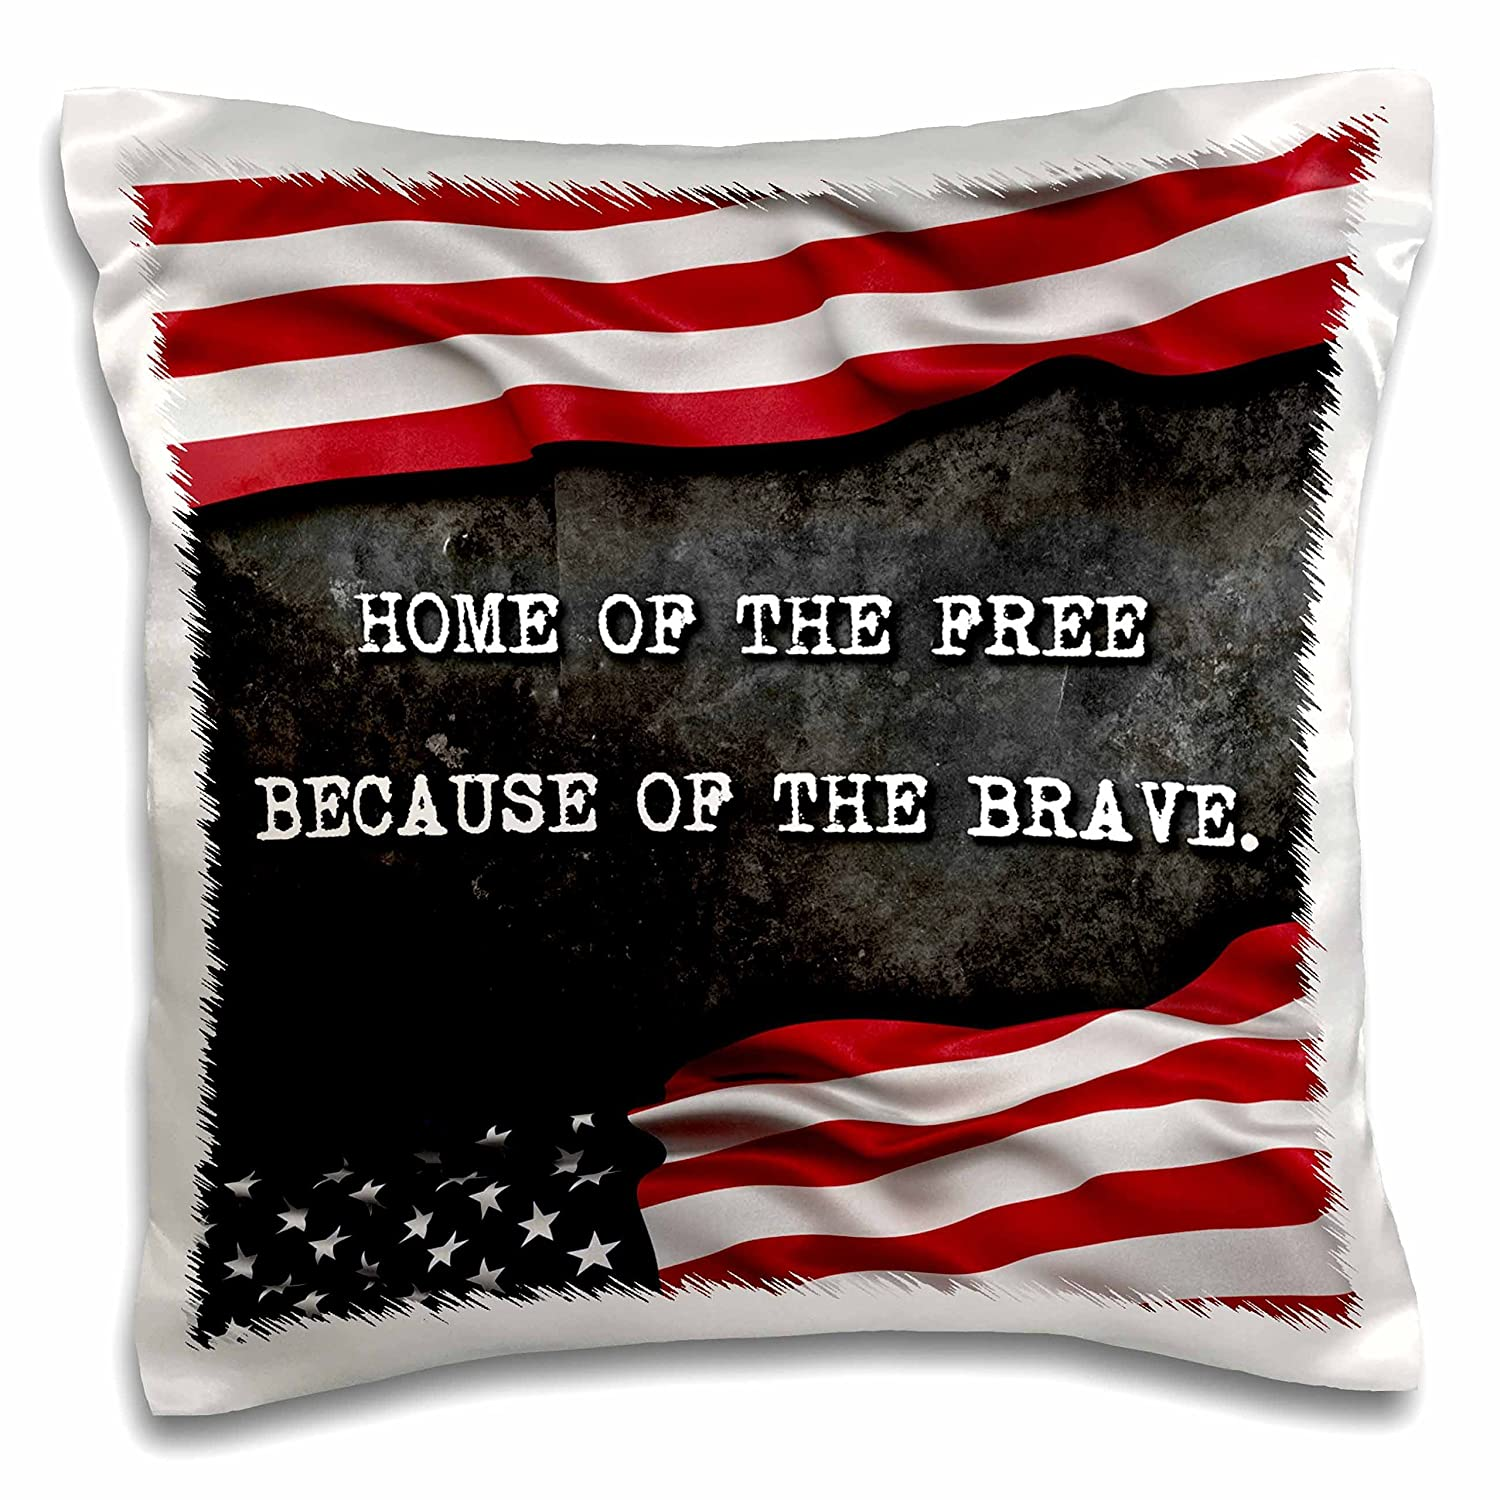 3D Rose Home of The Free Because of The Brave Patriotic Quote Pillow Case 16 x 16